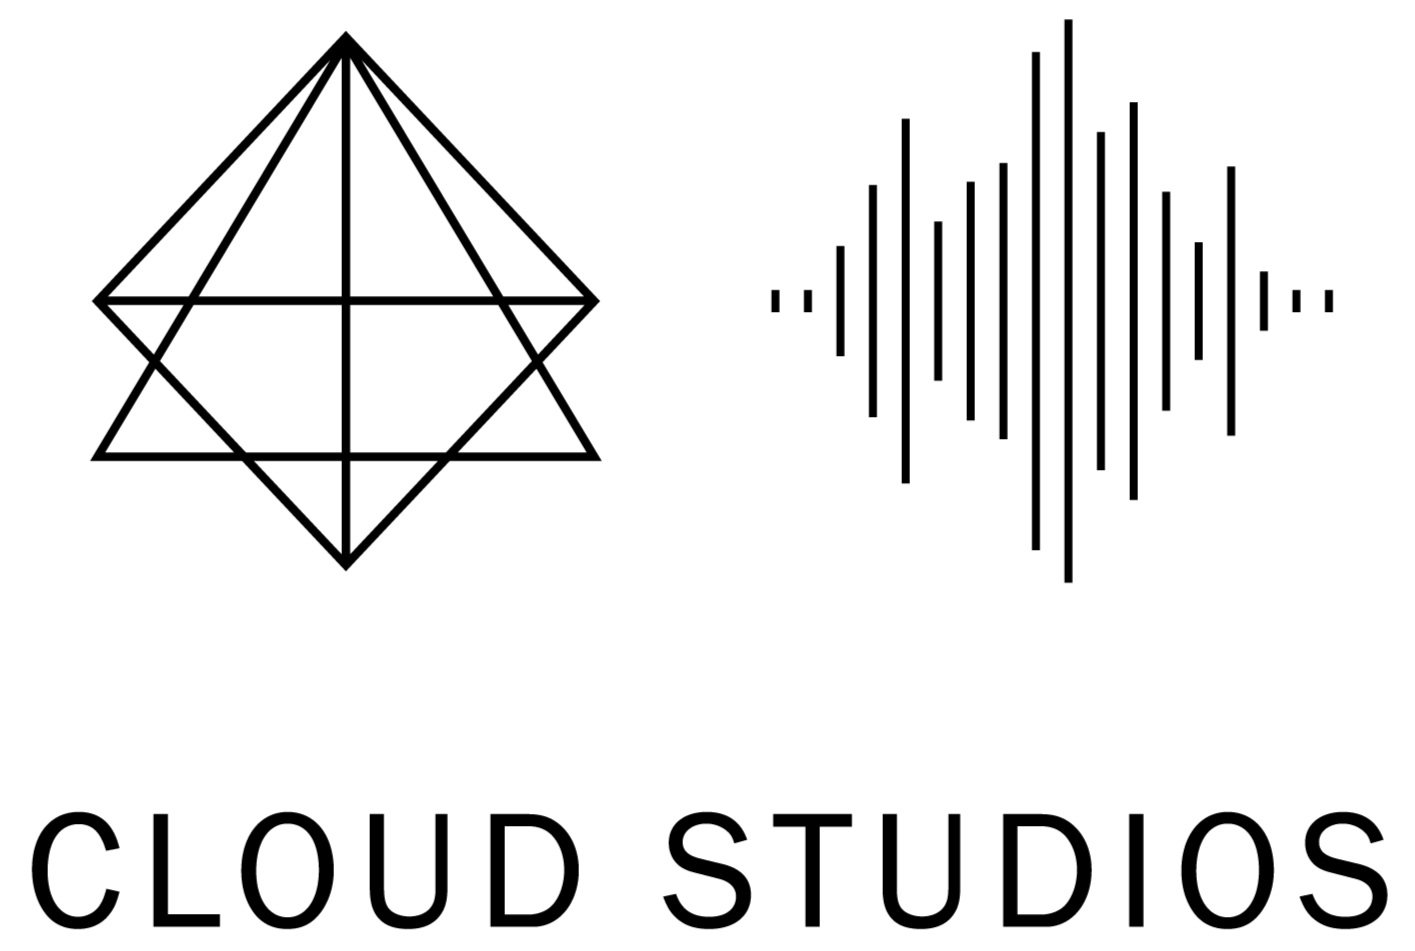 cloud_studios_logo-black.jpg